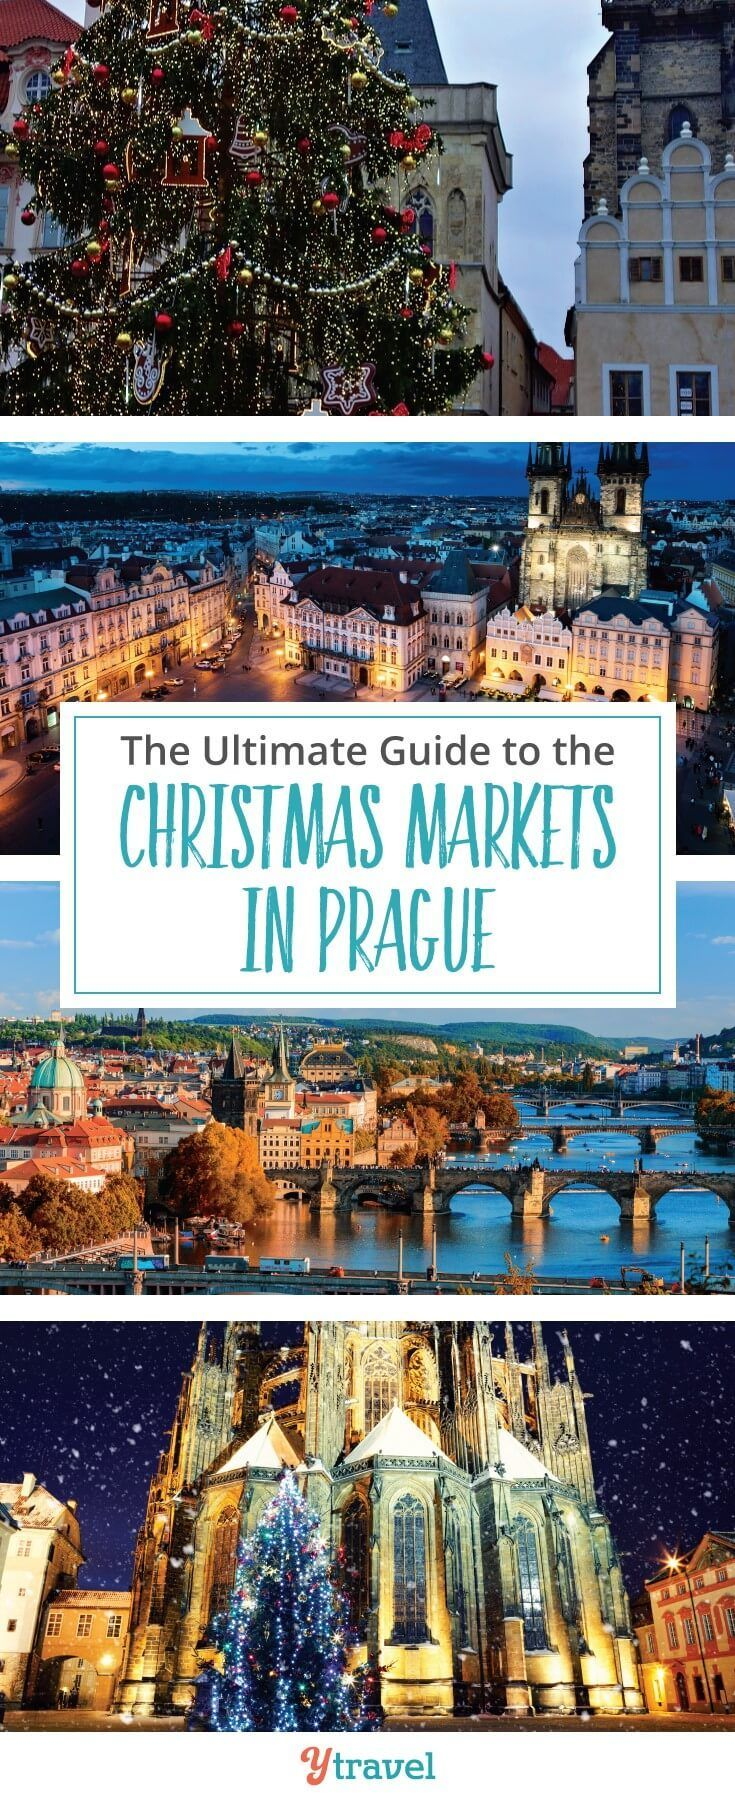 It's getting close to Christmas markets in Europe. Check out this ultimate guide to the Christmas markets in Prague written by Czech locals. #ChristmasMarkets #Europe #Prague